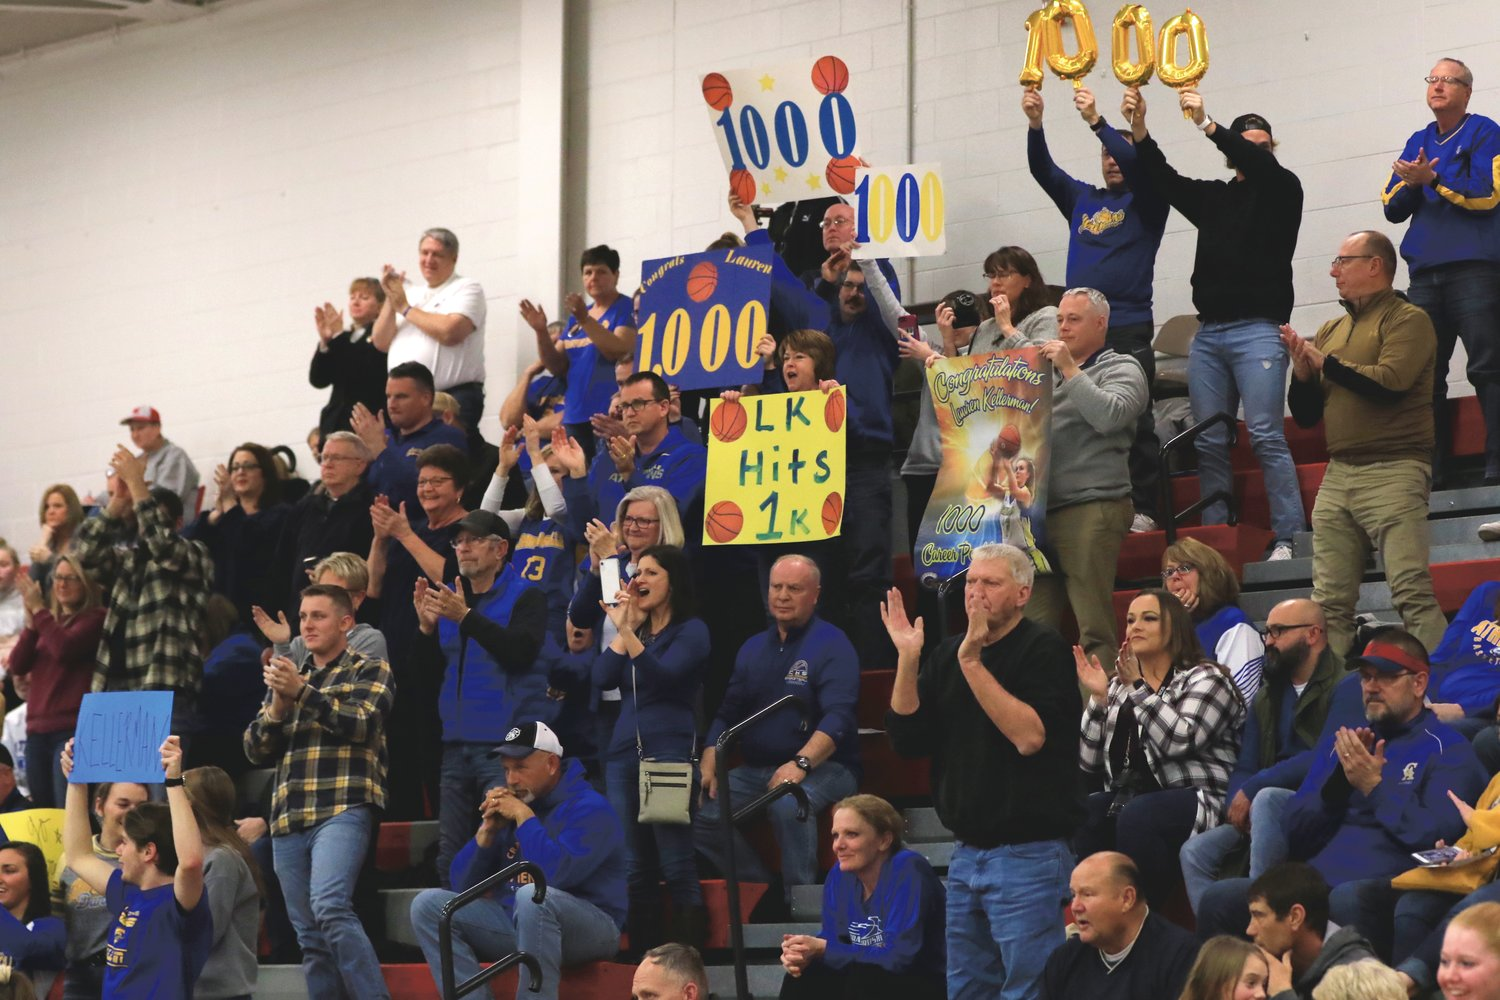 The Crawfordsville cheering section congratulates Lauren Kellerman on eclipsing the 1,000-point scoring mark.